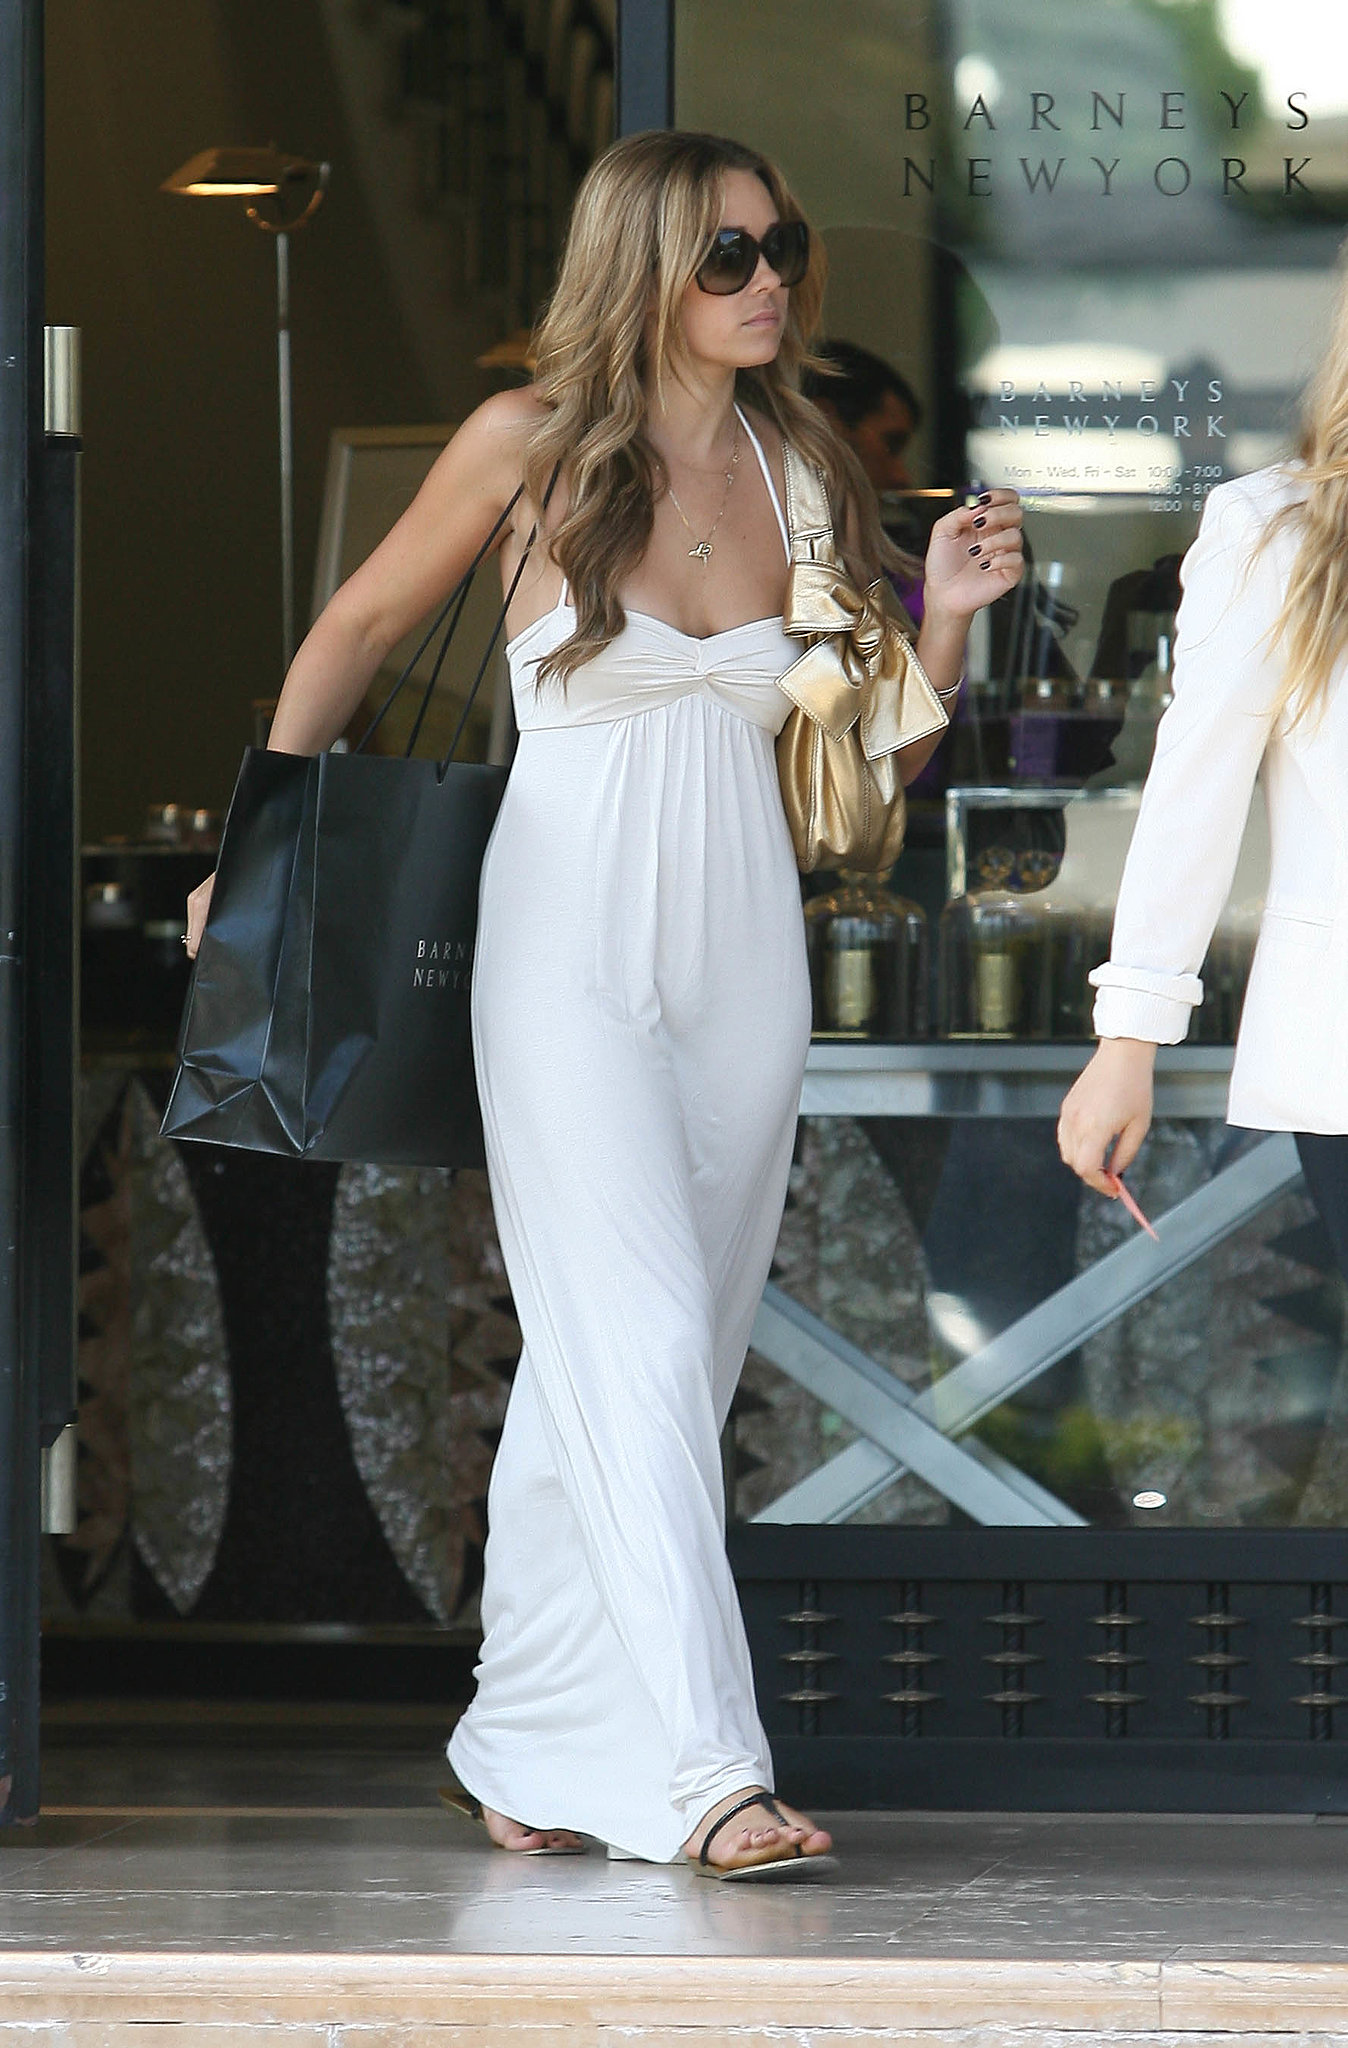 During a 2008 LA shopping spree, LC went back to basics in a white maxi dress and black sandals. Lesson from Lauren: steer clear of the bride vibe by keeping your white maxi simple.